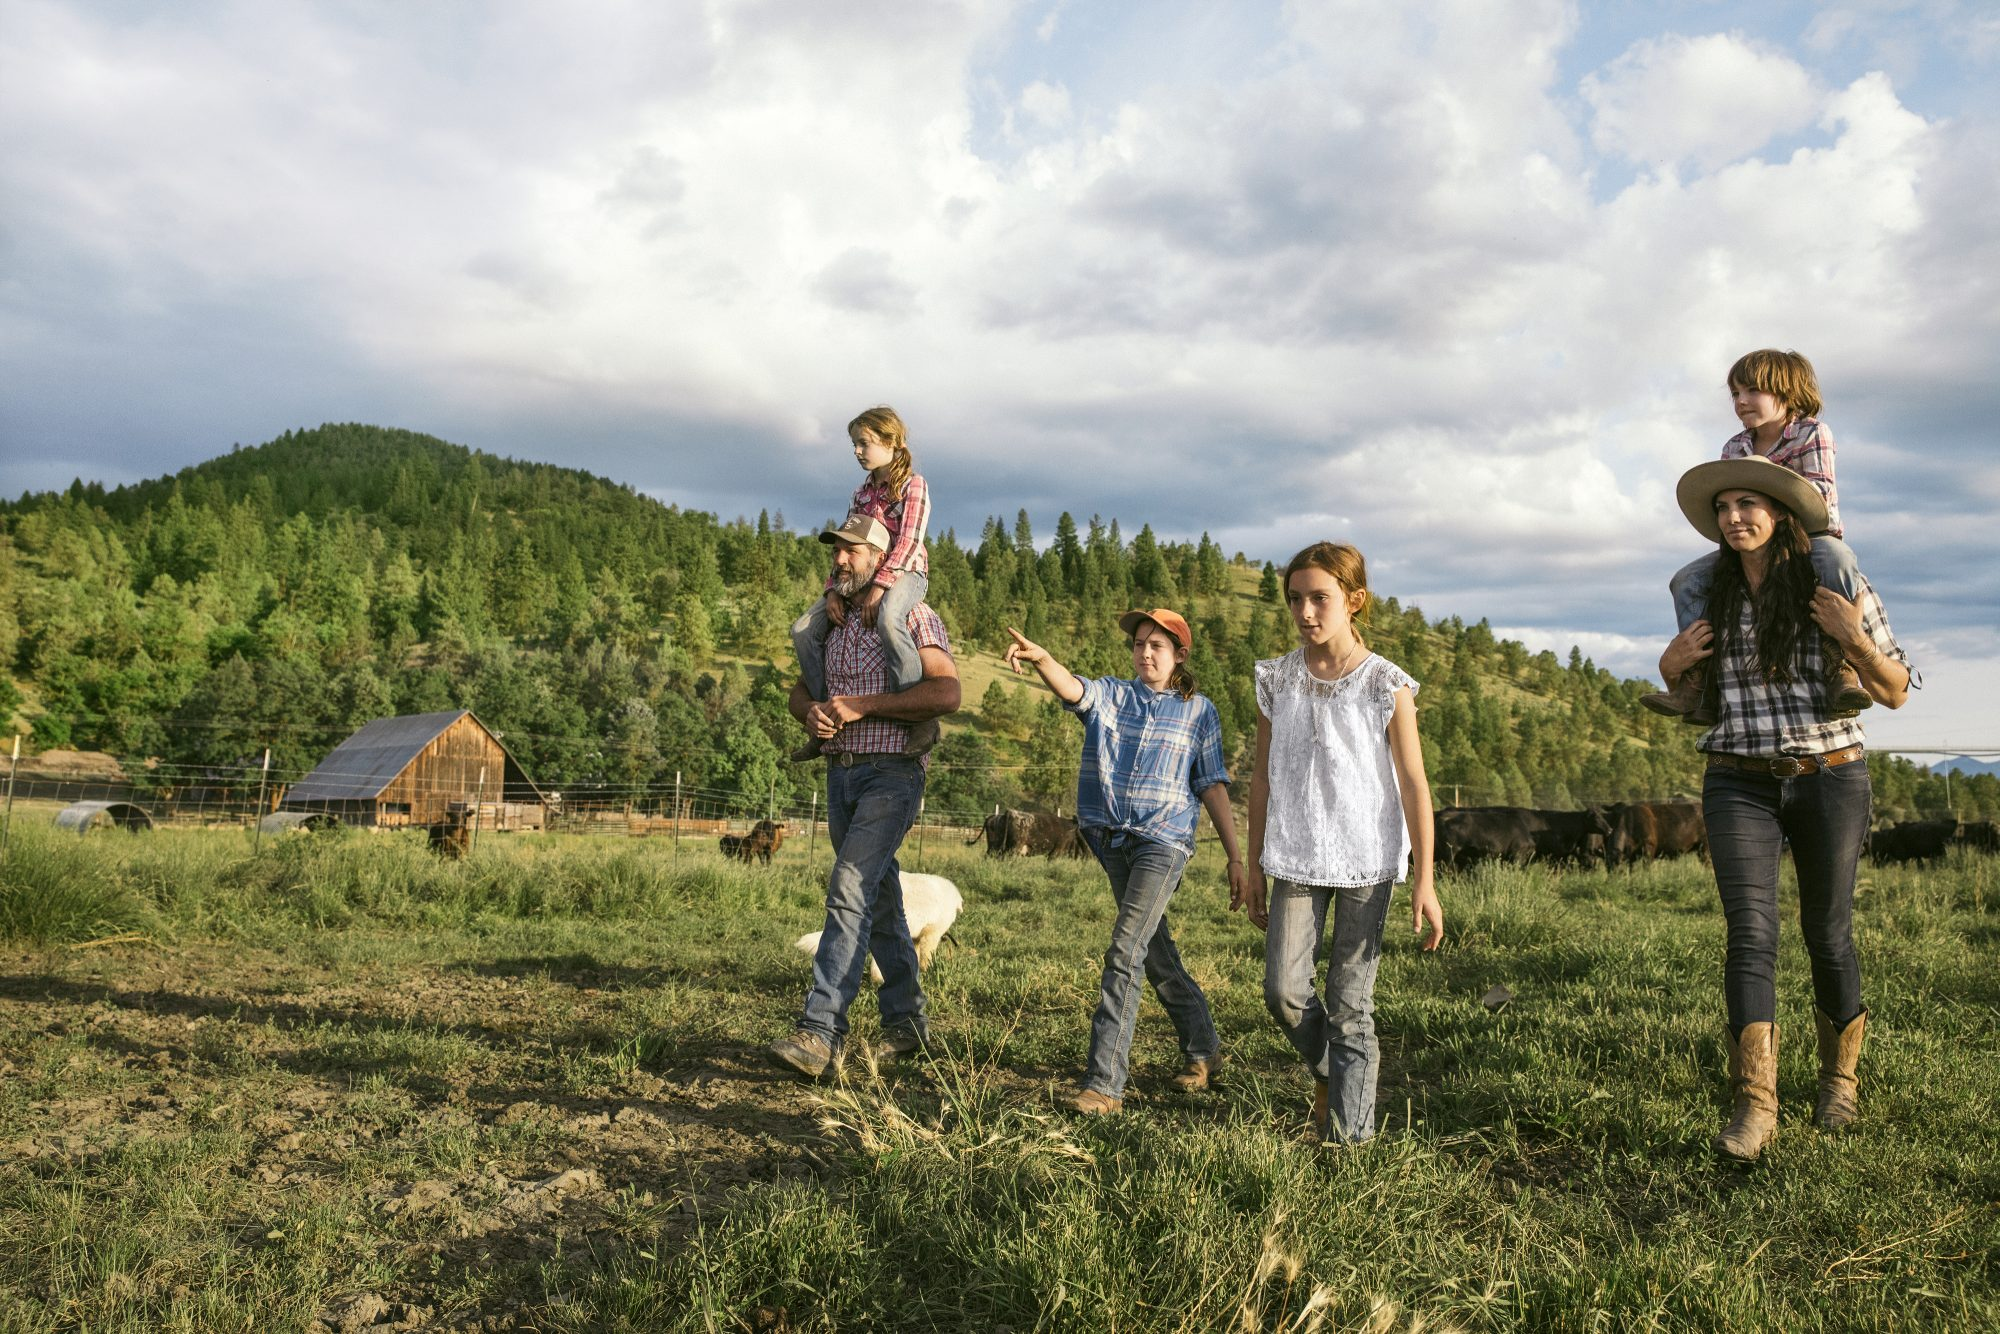 This Family of 6 Left Silicon Valley to Become Cattle Ranchers. Here's How They Made the Switch.